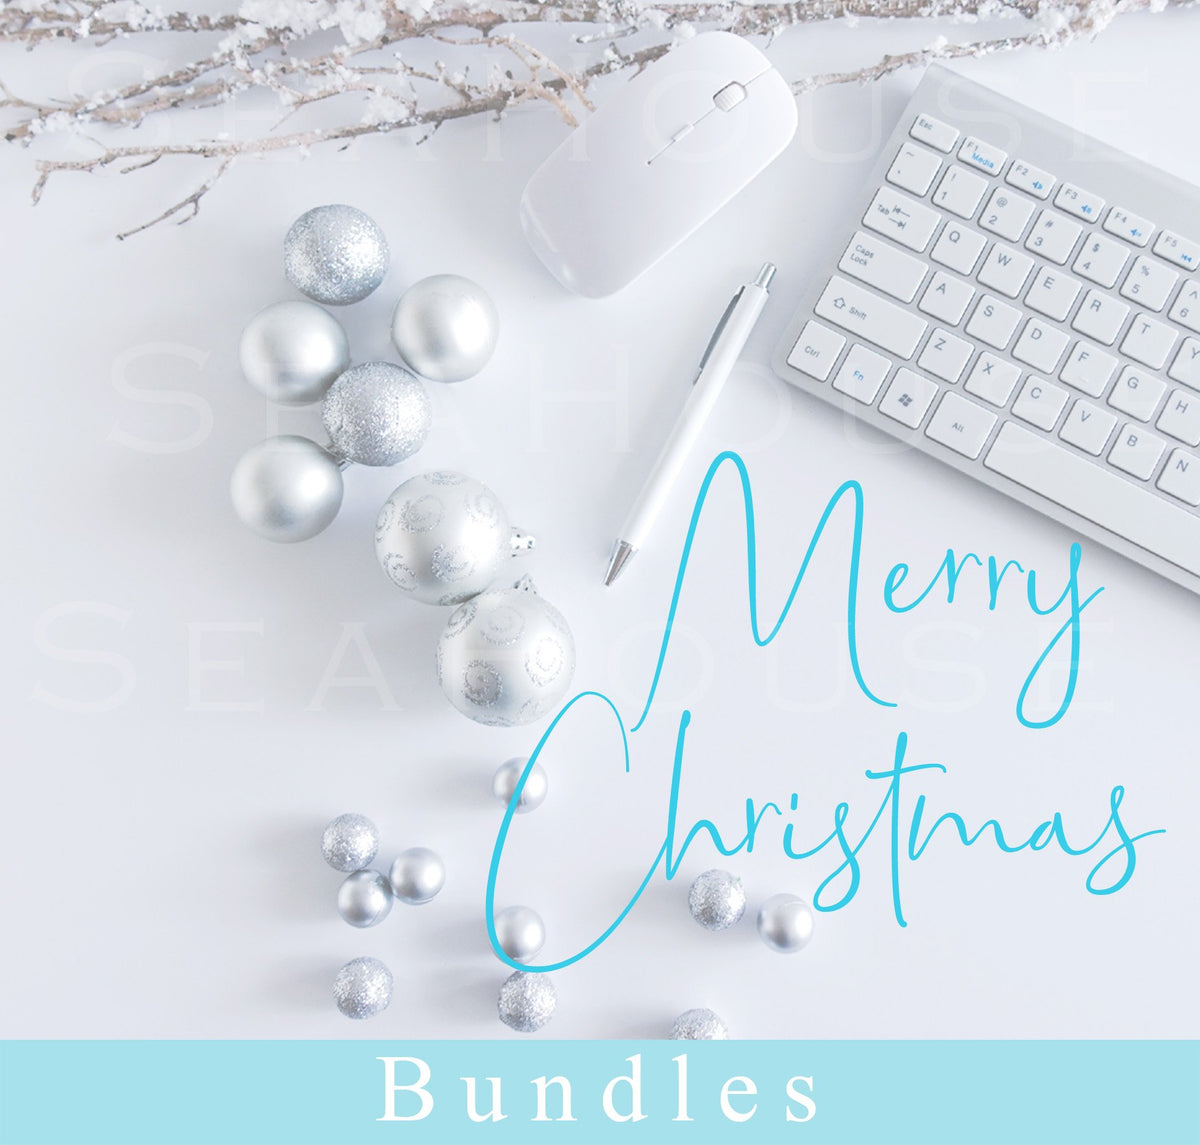 Bundles Merry Christmas Collection Image